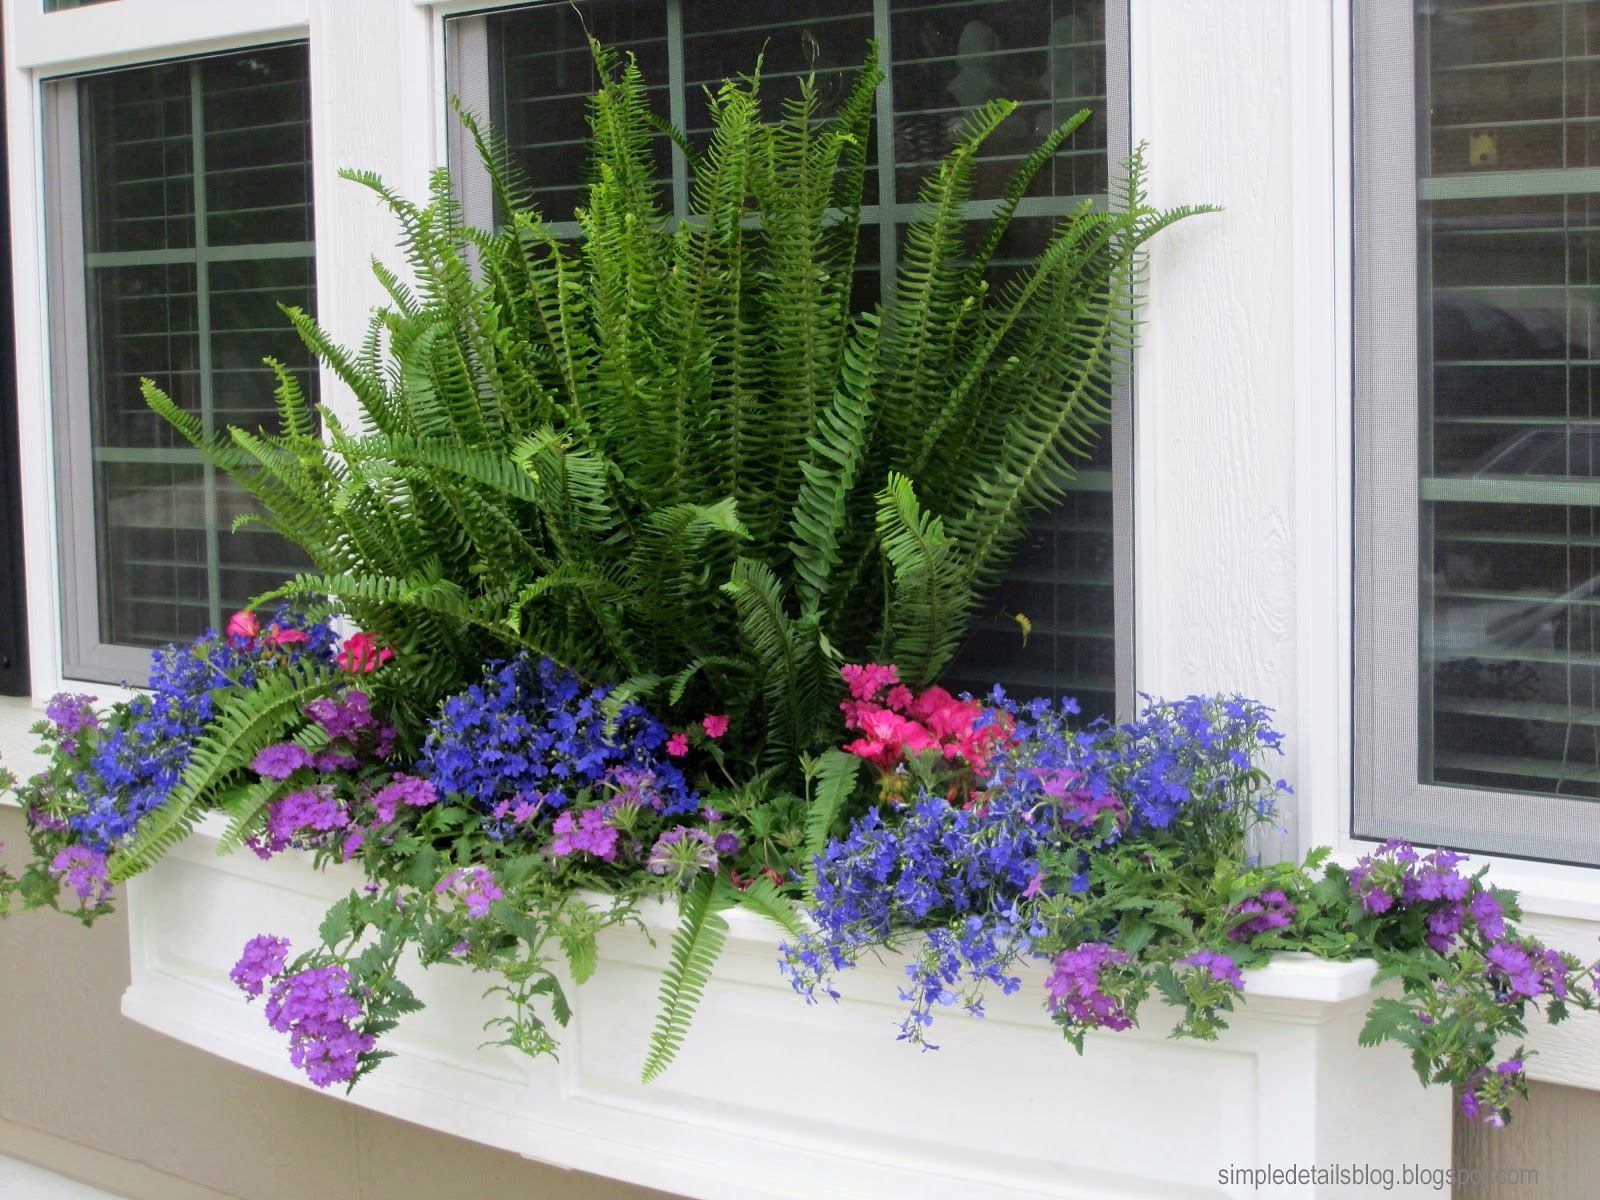 Simple details cottage style window box - Flower box ideas for summer ...